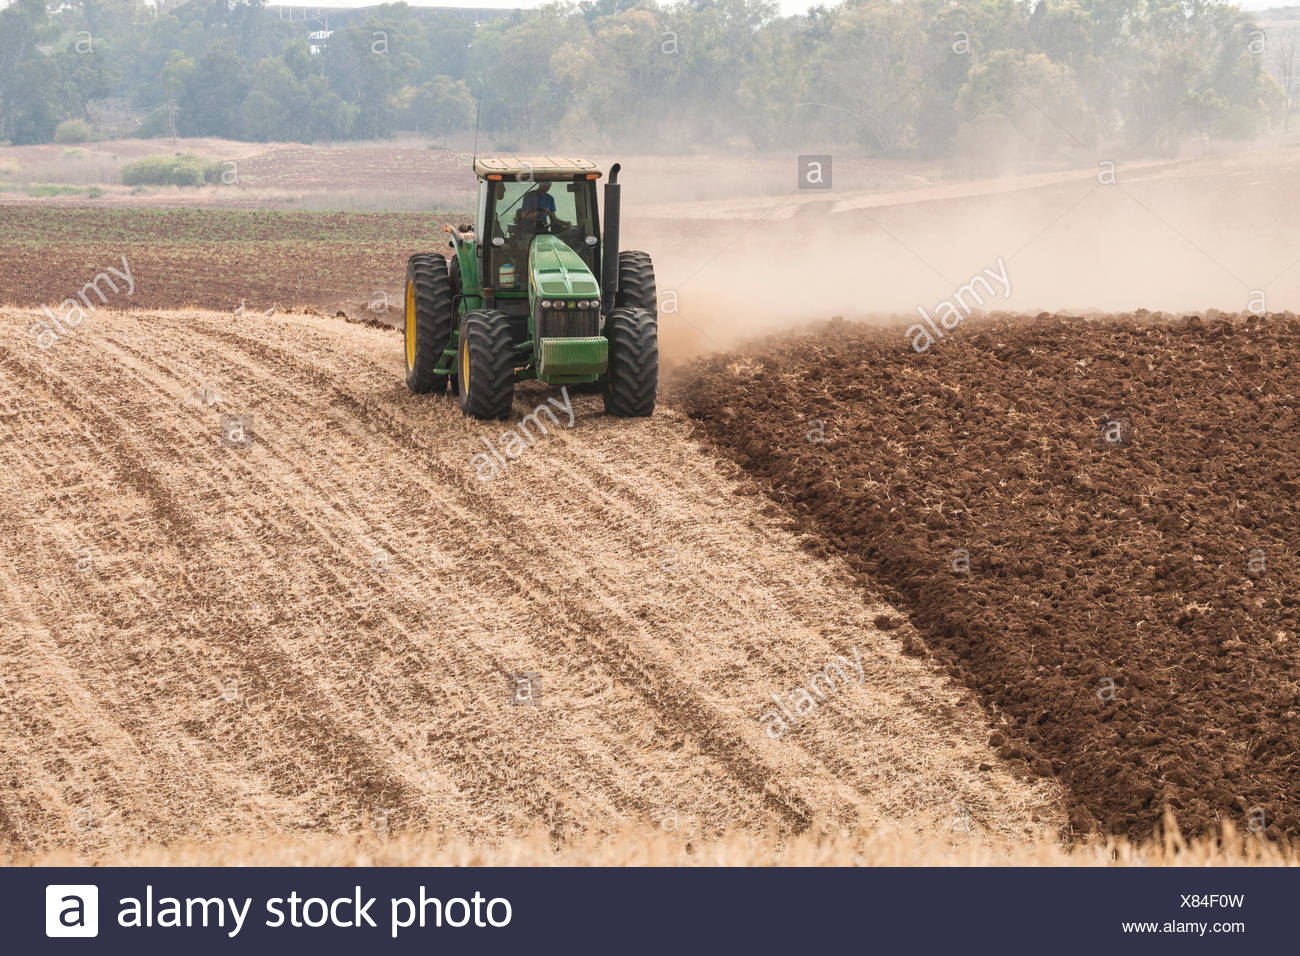 Tractor plowing a field, countryside, Israel - Stock Image